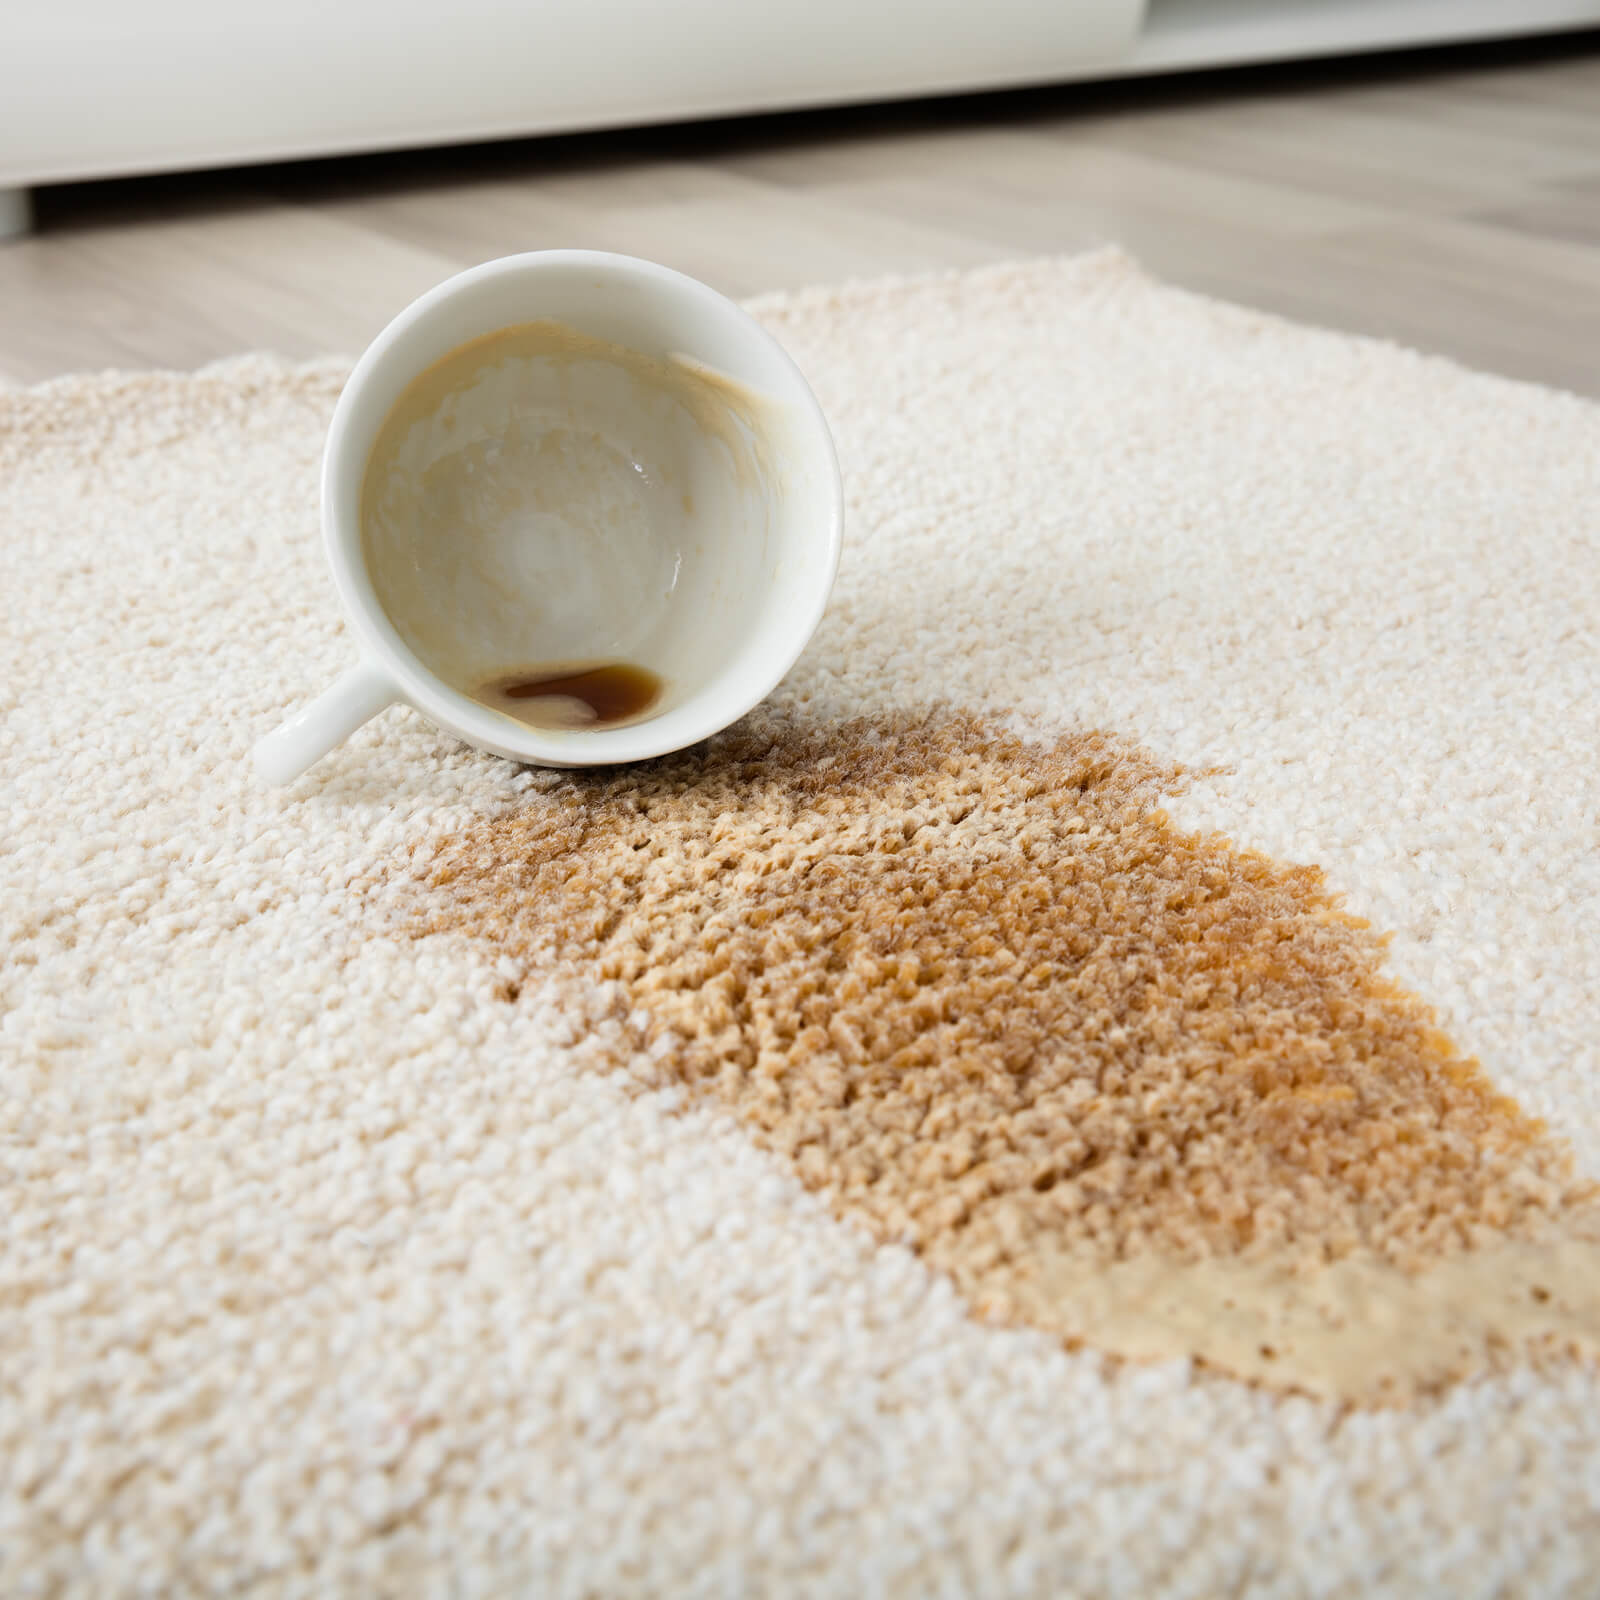 Carpet cleaning tips after spilled coffee | Bram Flooring